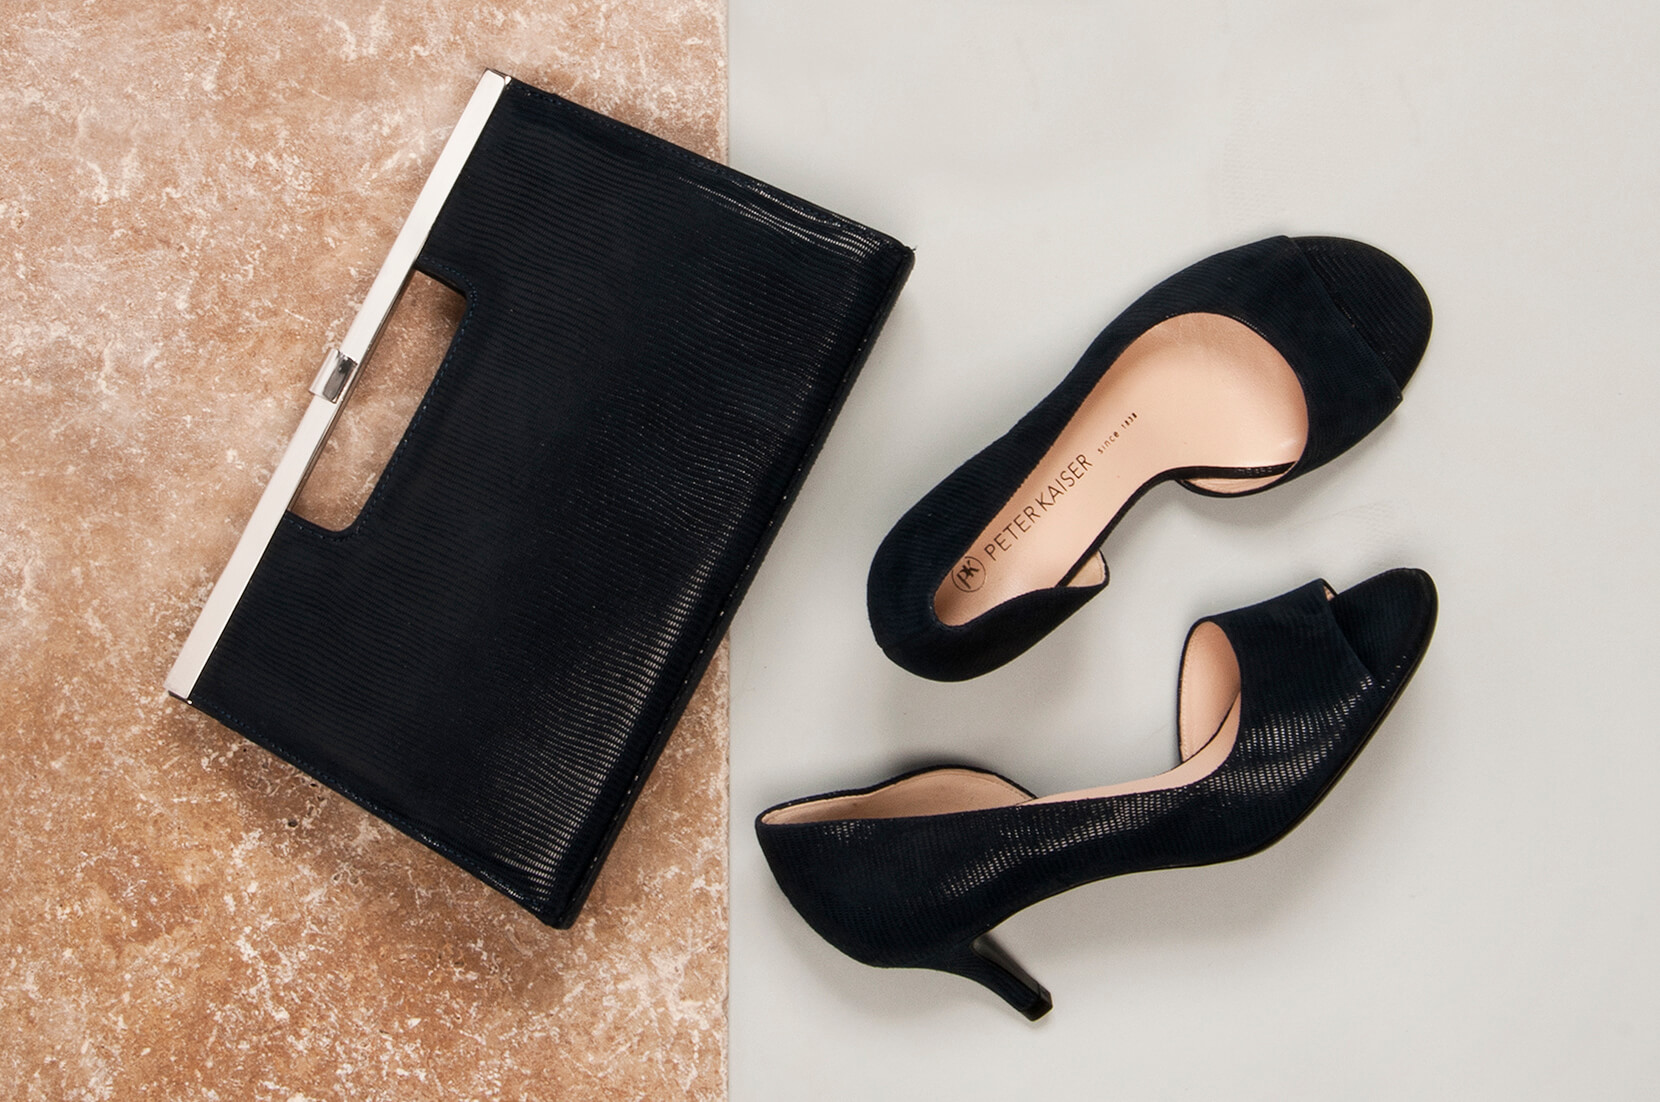 black-occasion-shoes-and-matching-handbag